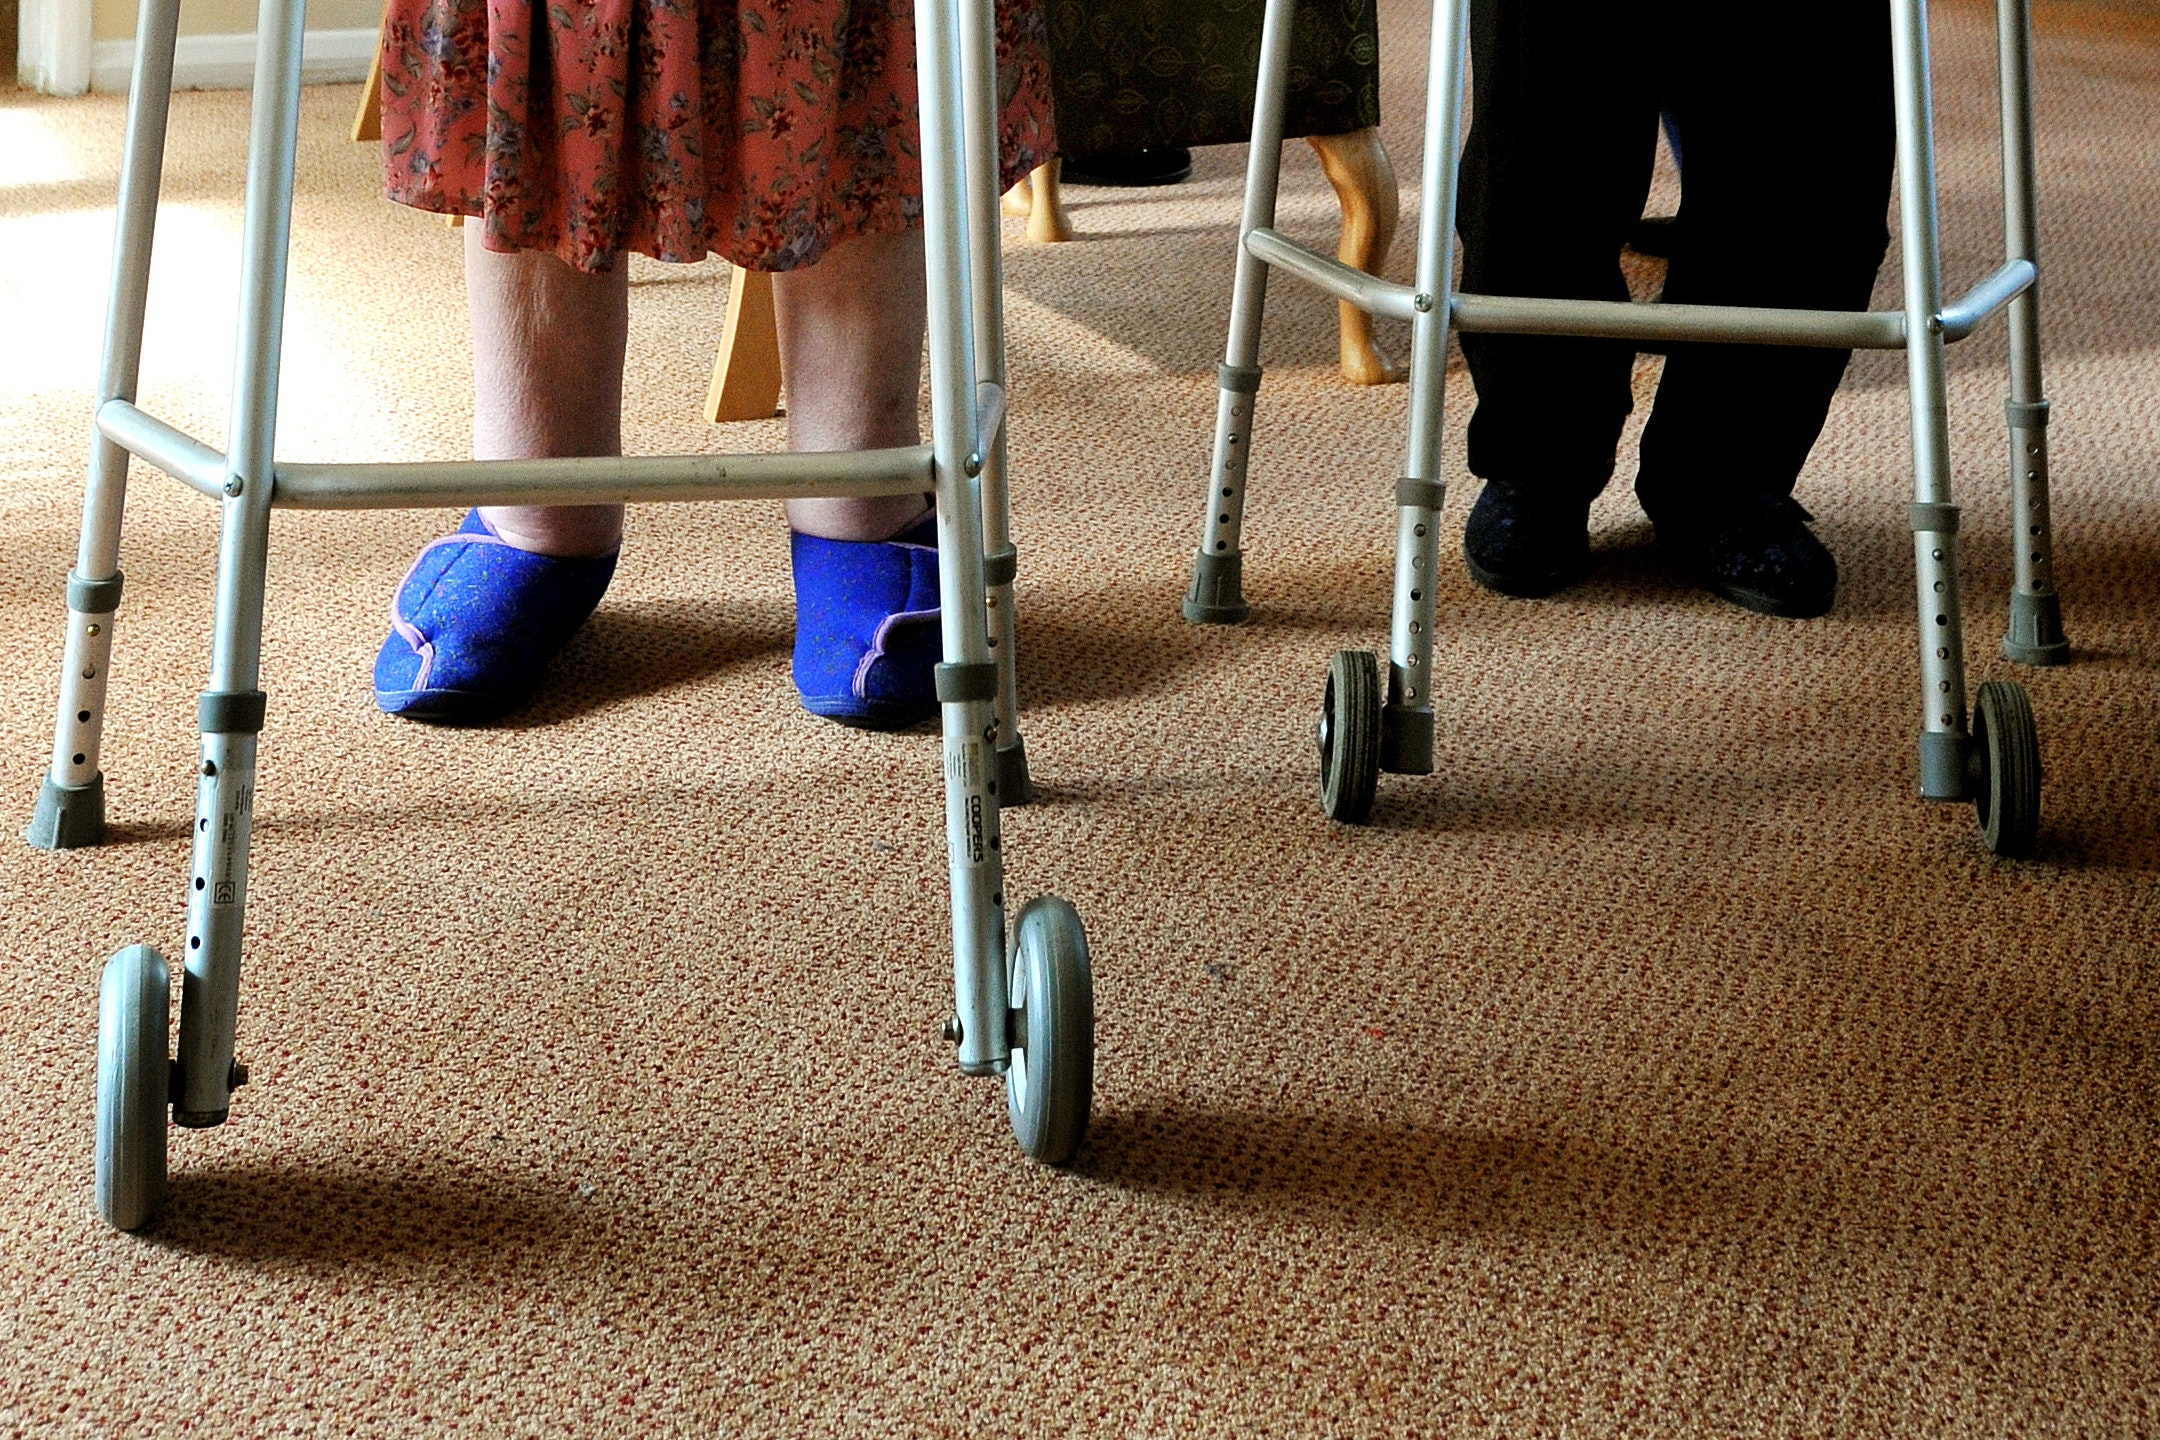 Elderly people using zimmer frames